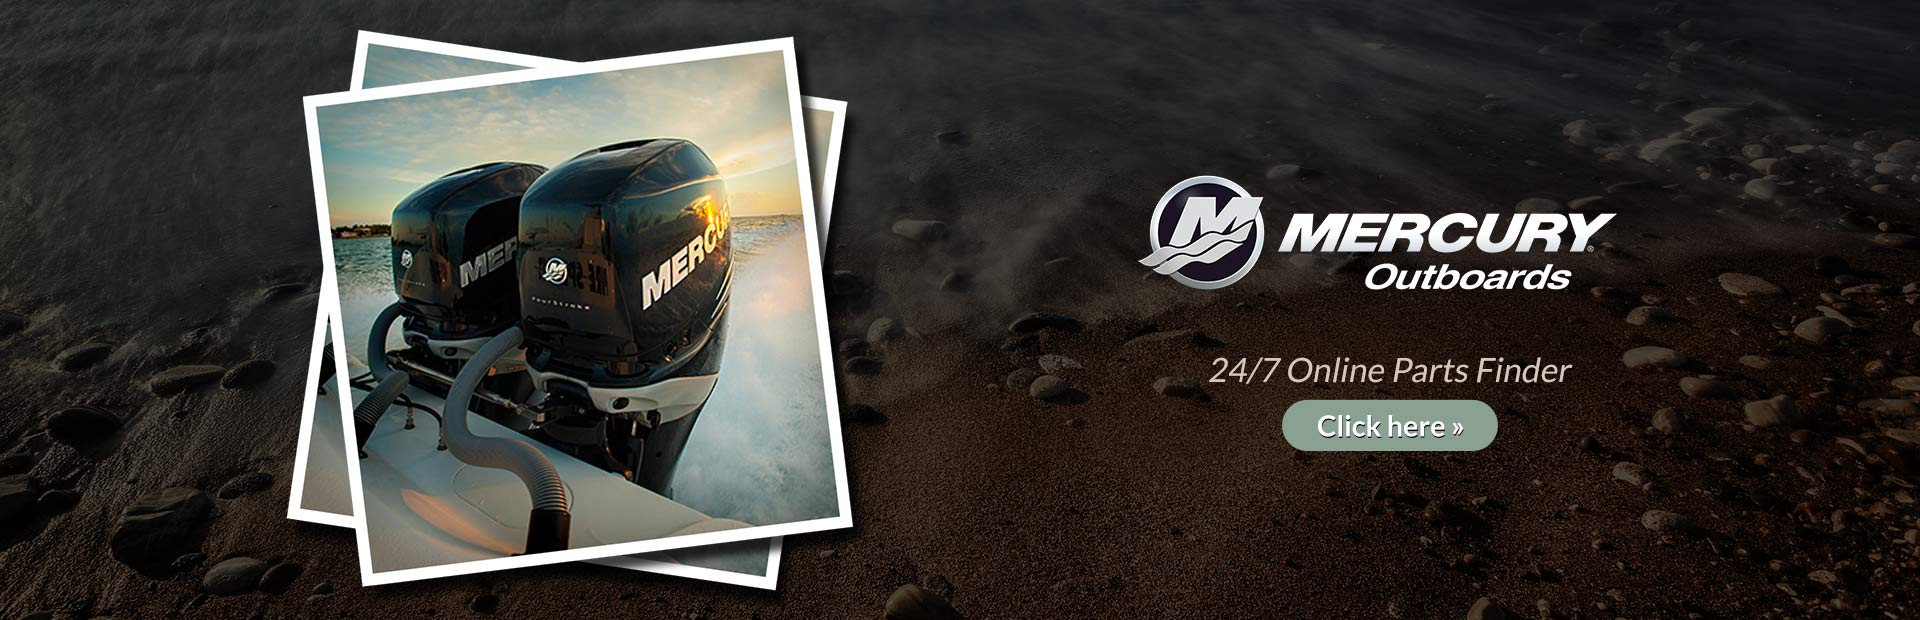 Mercury Outboard Online Parts Finder: Click here to find your parts 24/7!